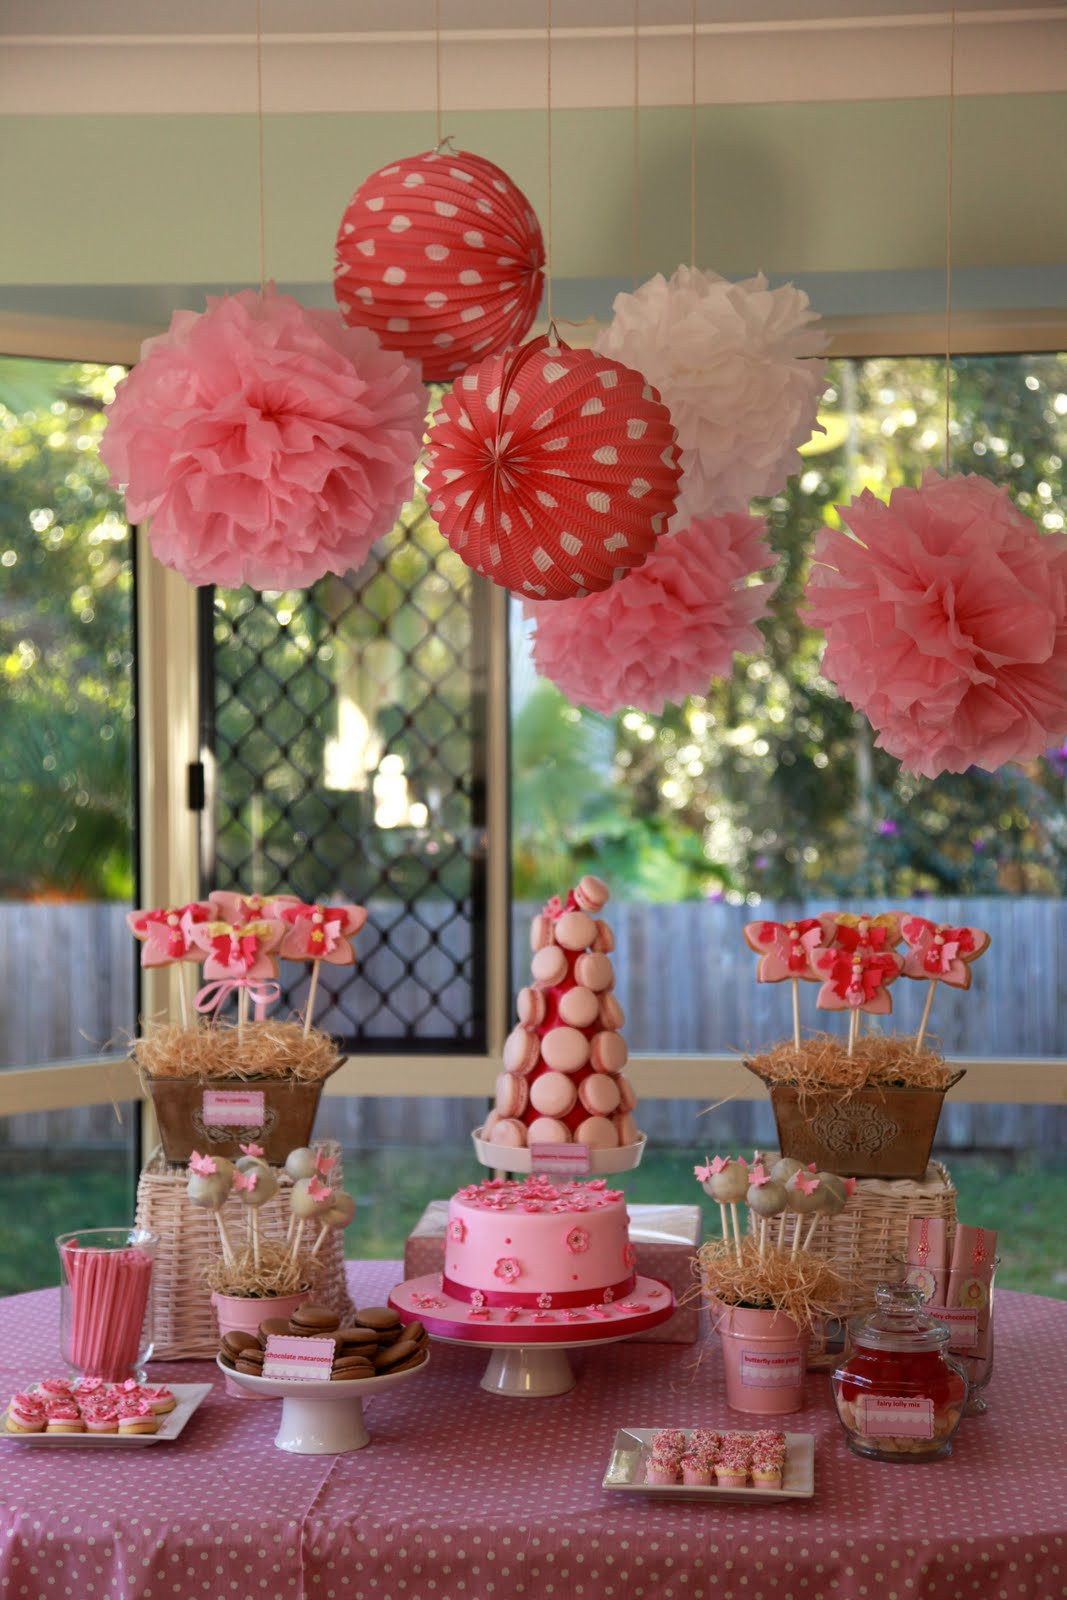 High Tea Party Ideas  Minds musings tea parties wonderland high tea garden party